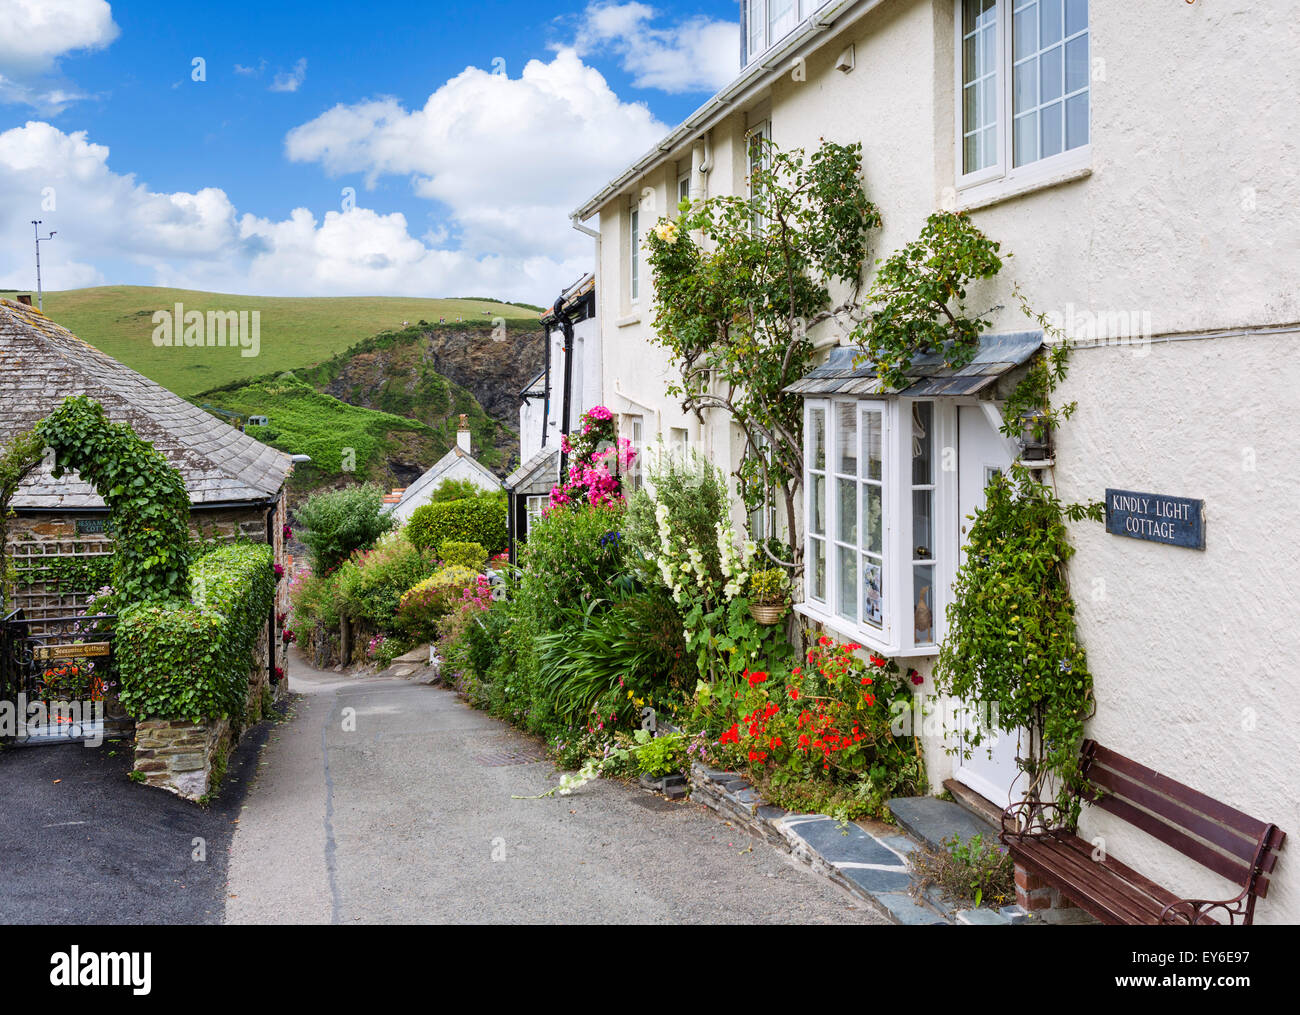 Traditional cottages on Rose Hill just above the village centre, Port Isaac, Cornwall, England, UK - Stock Image